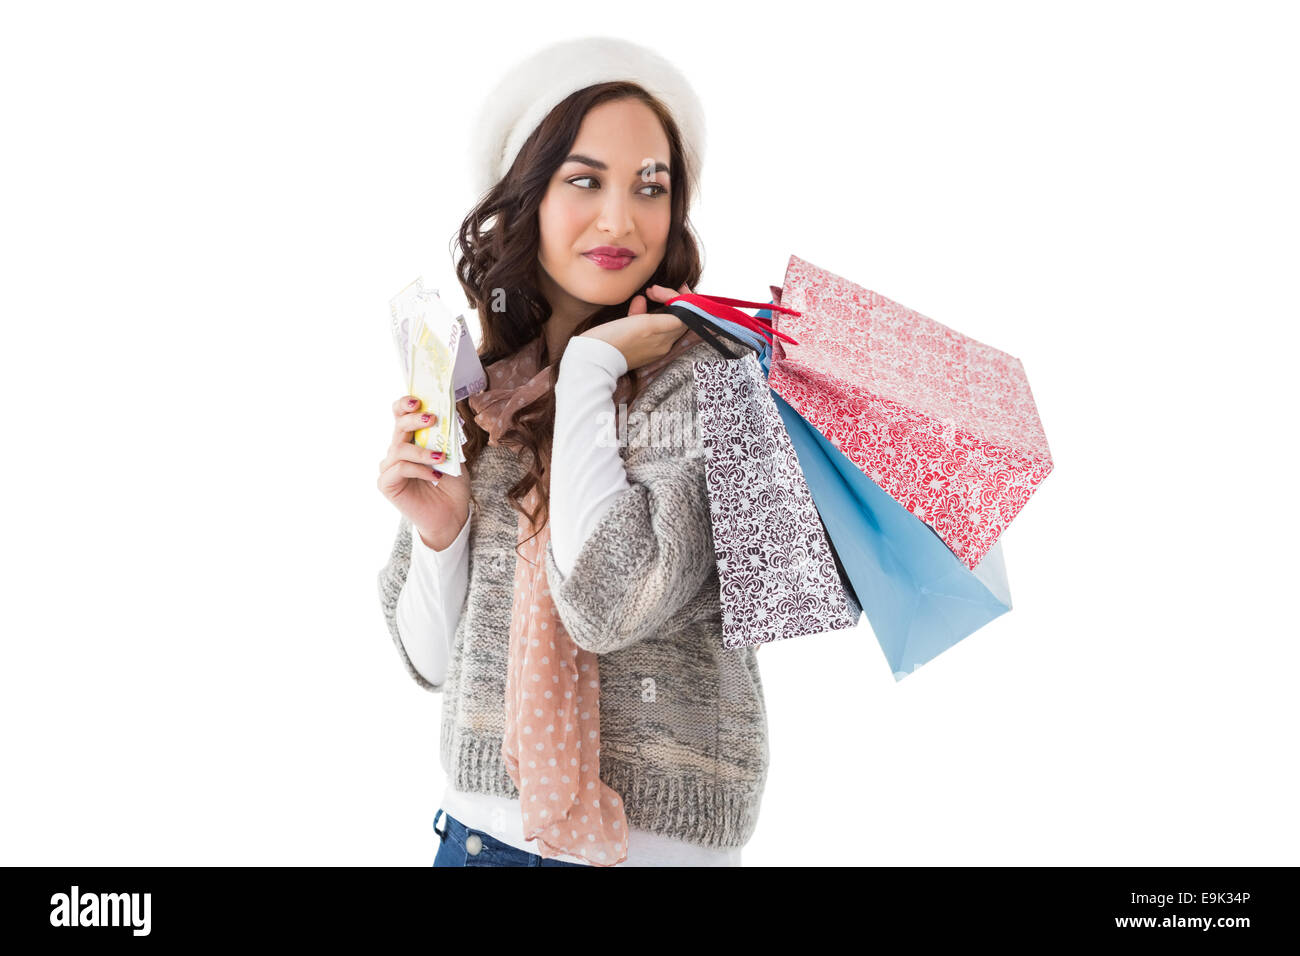 Brunette holding cash and shopping bags - Stock Image